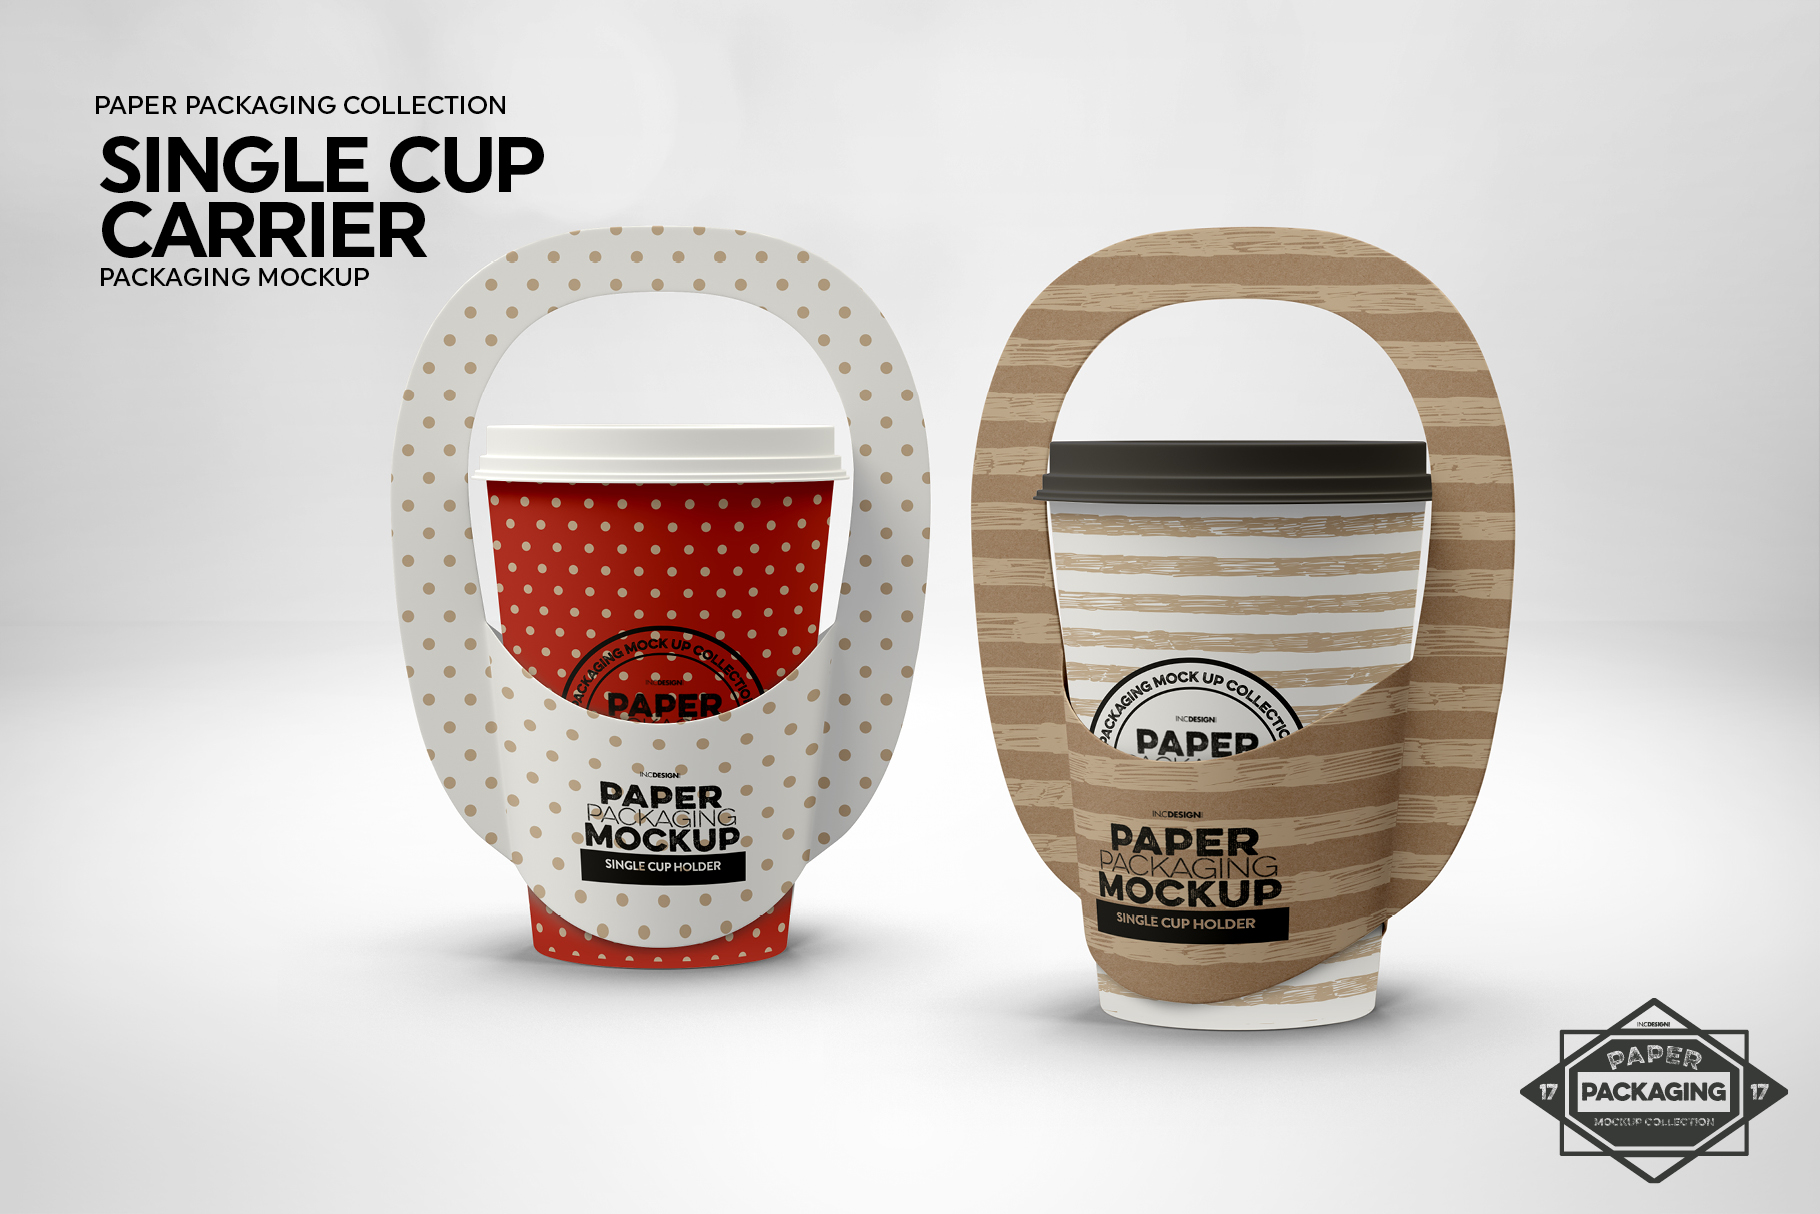 Single Cup Paper Carrier Packaging Mockup example image 4